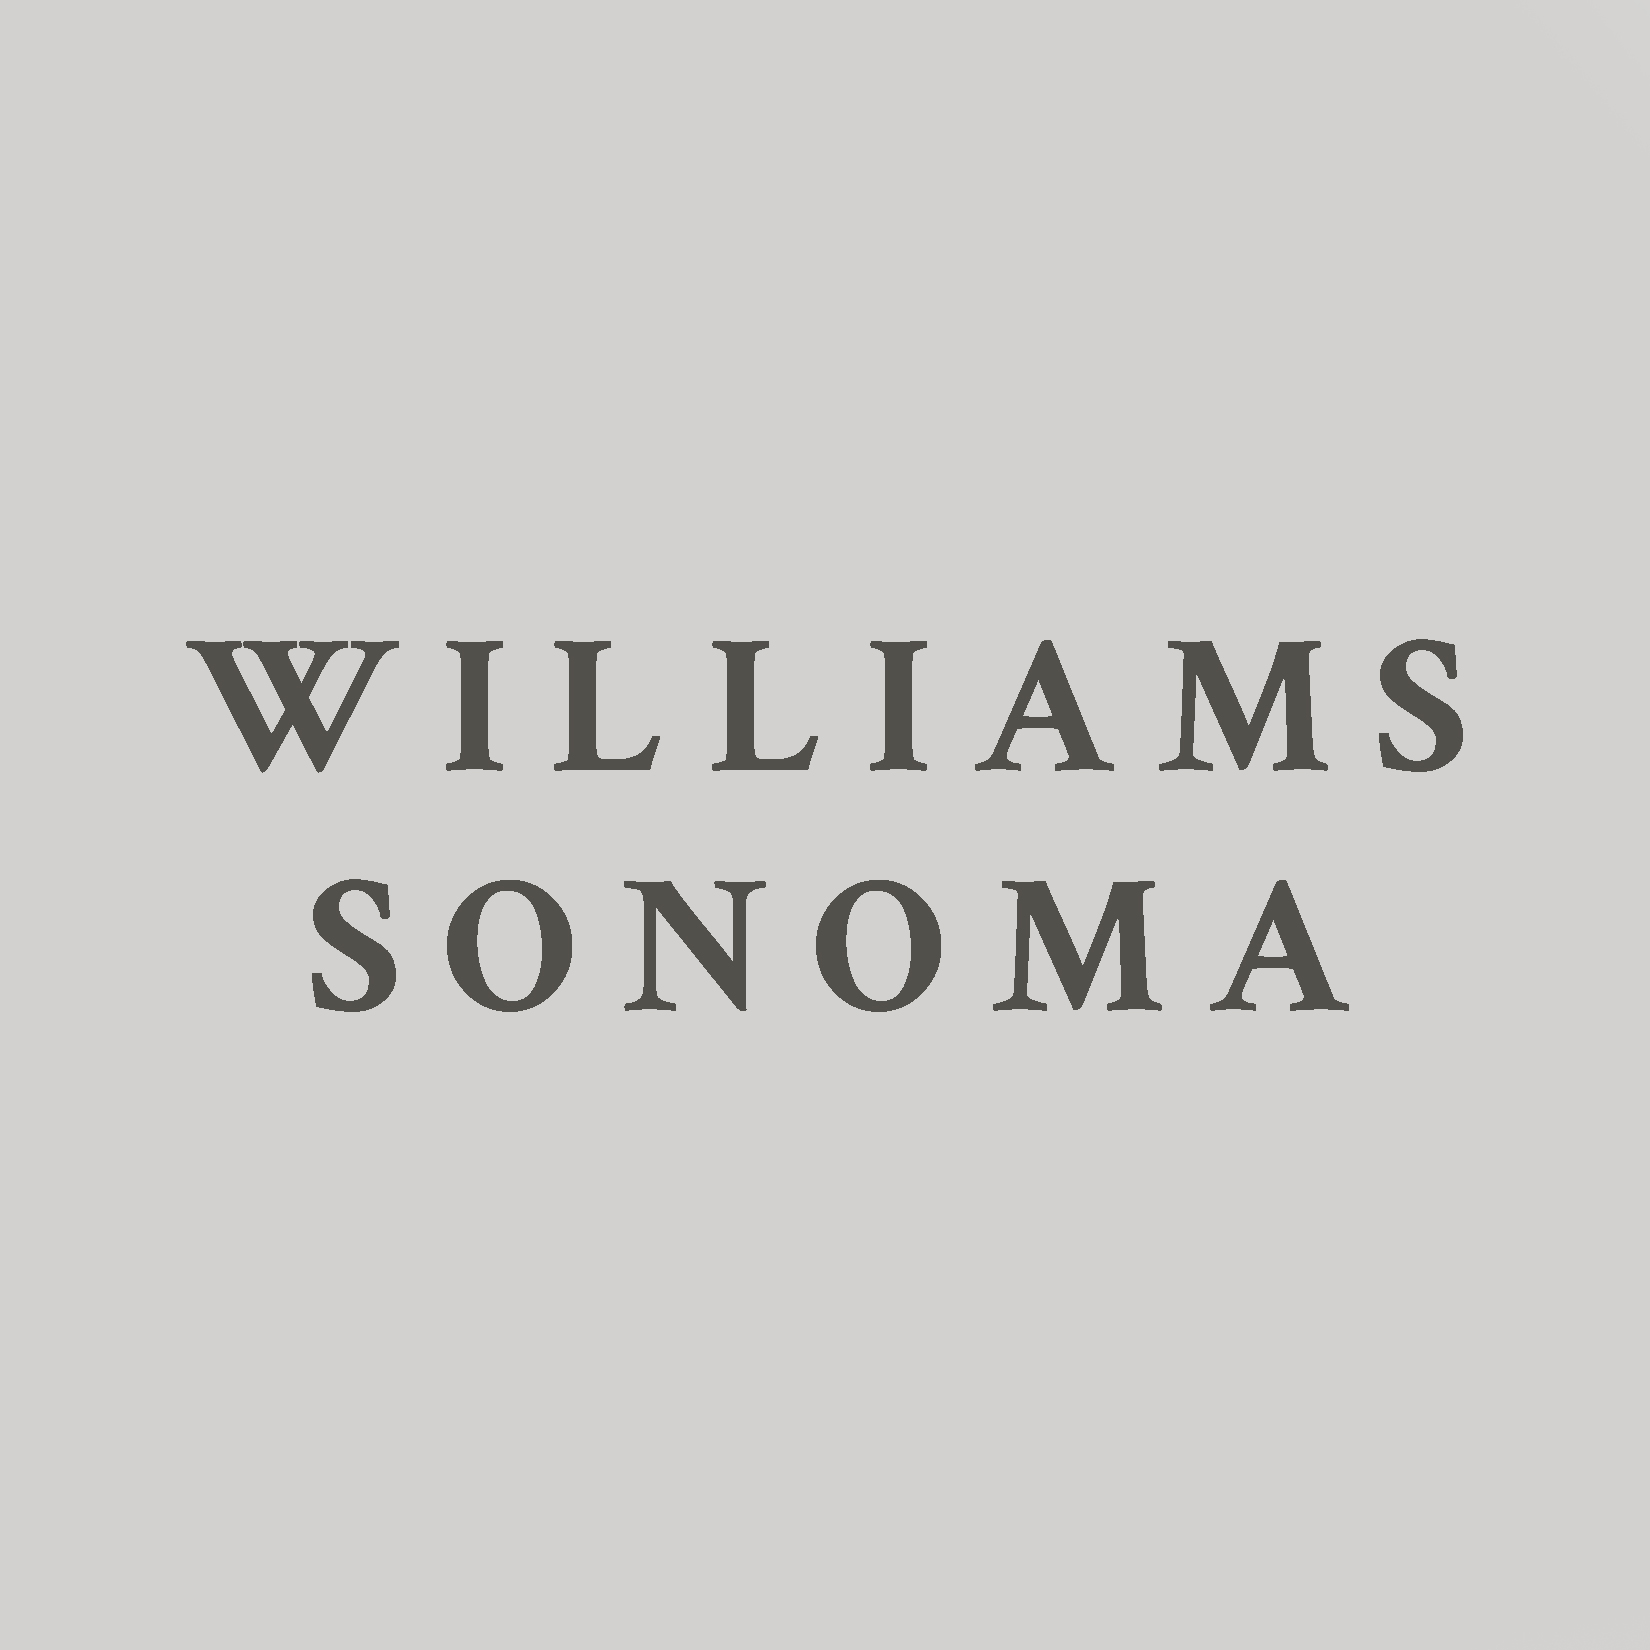 WILLIAM SONOMA.jpg